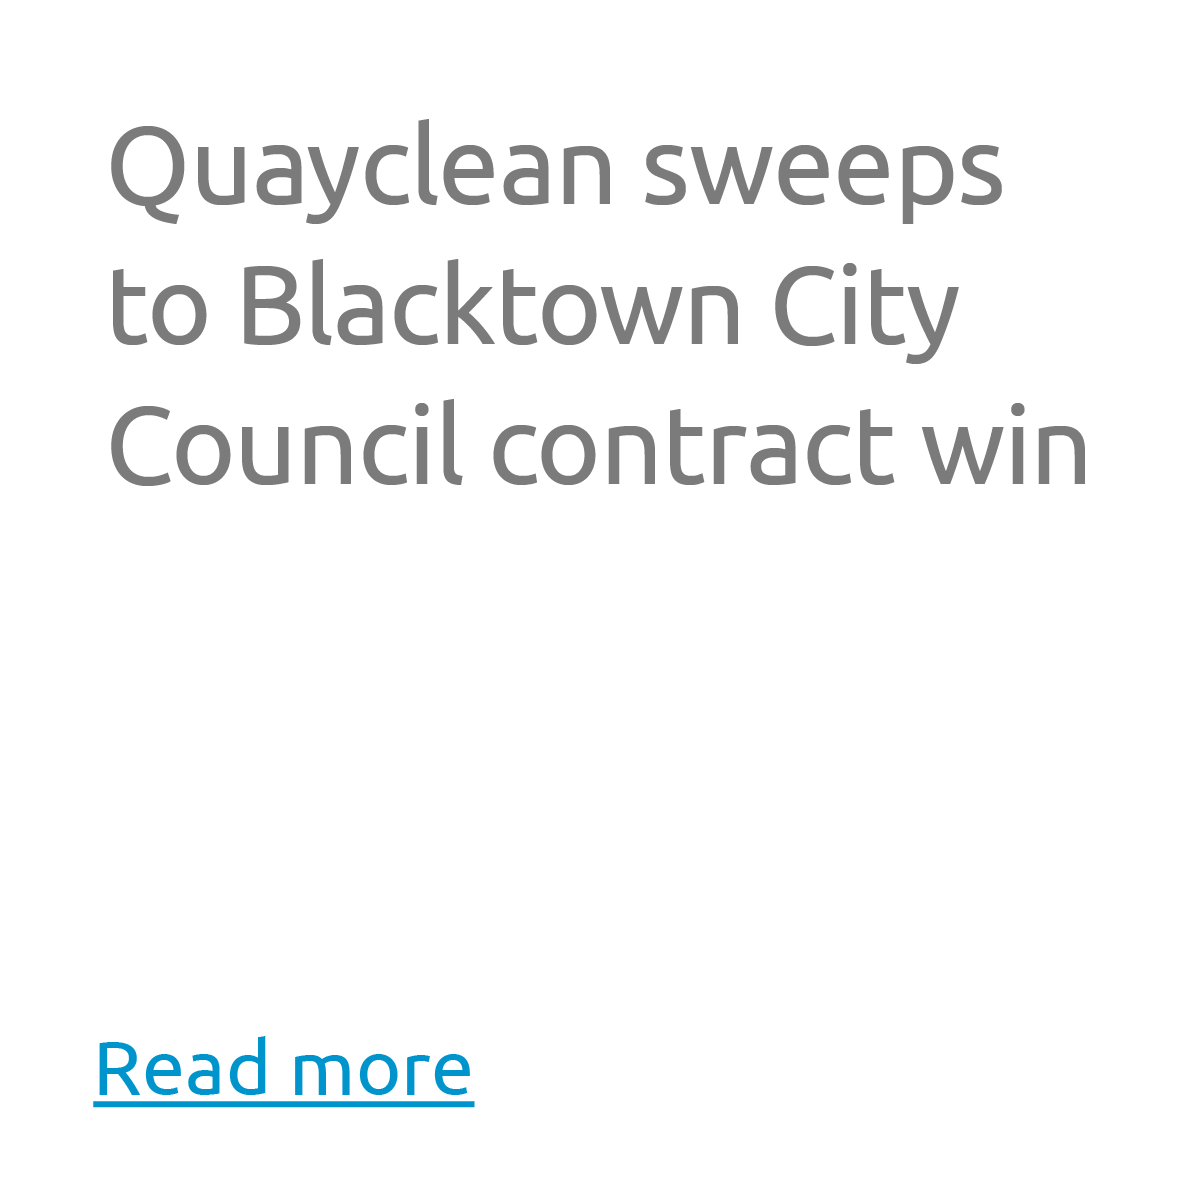 Quayclean sweeps to Blacktown City Council contract win